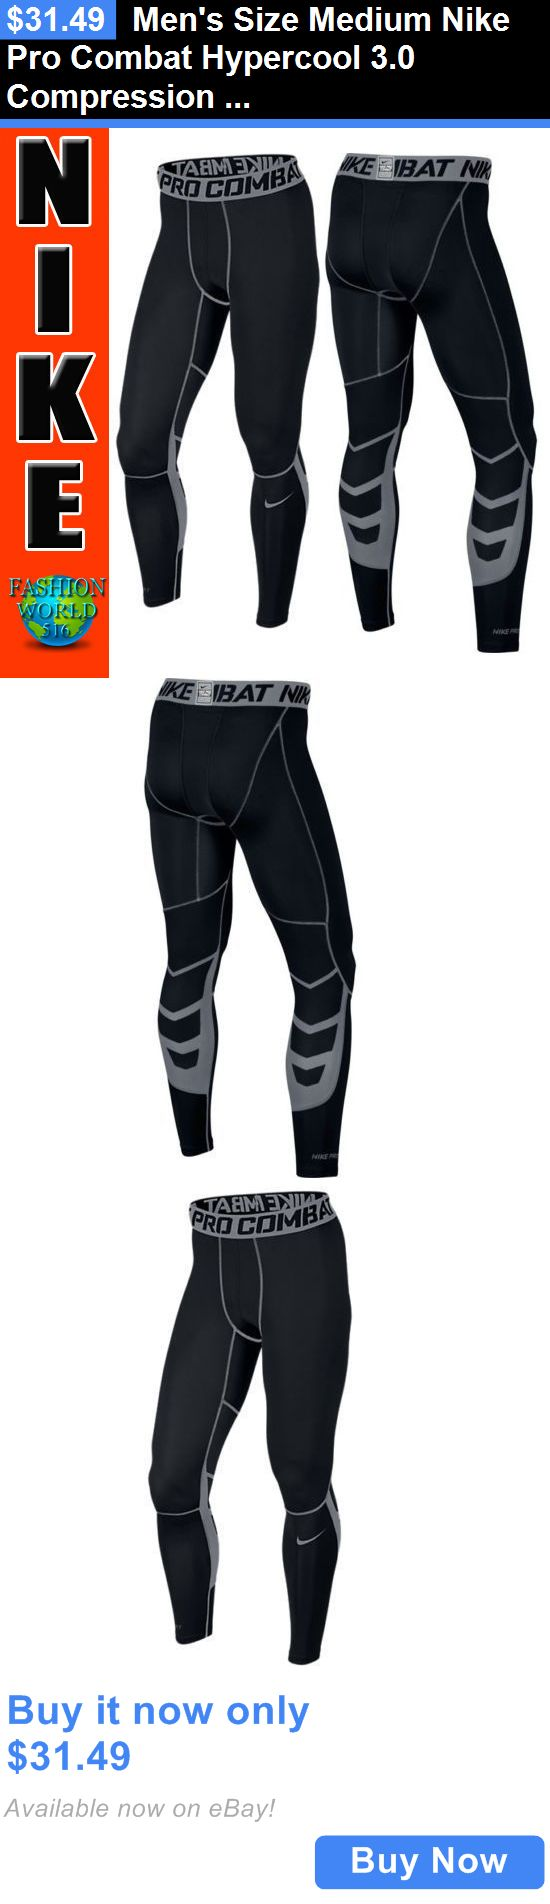 Men Athletics: Mens Size Medium Nike Pro Combat Hypercool 3.0 Compression Tights 636157 Black BUY IT NOW ONLY: $31.49